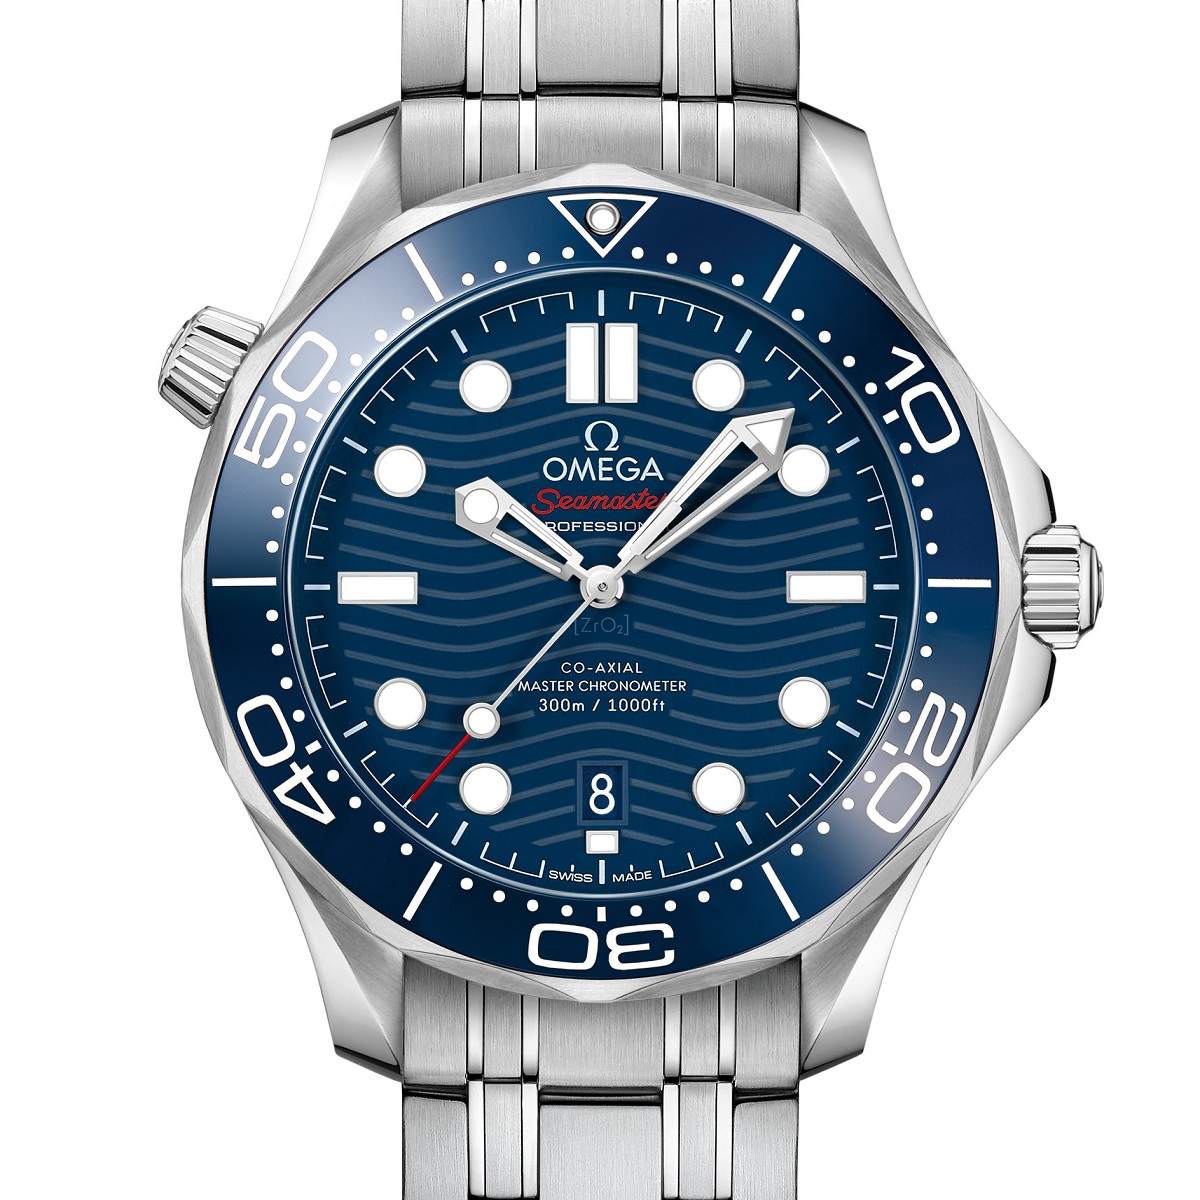 Baselworld 2018 omega seamaster professional diver 300m watch - Omega dive watch ...